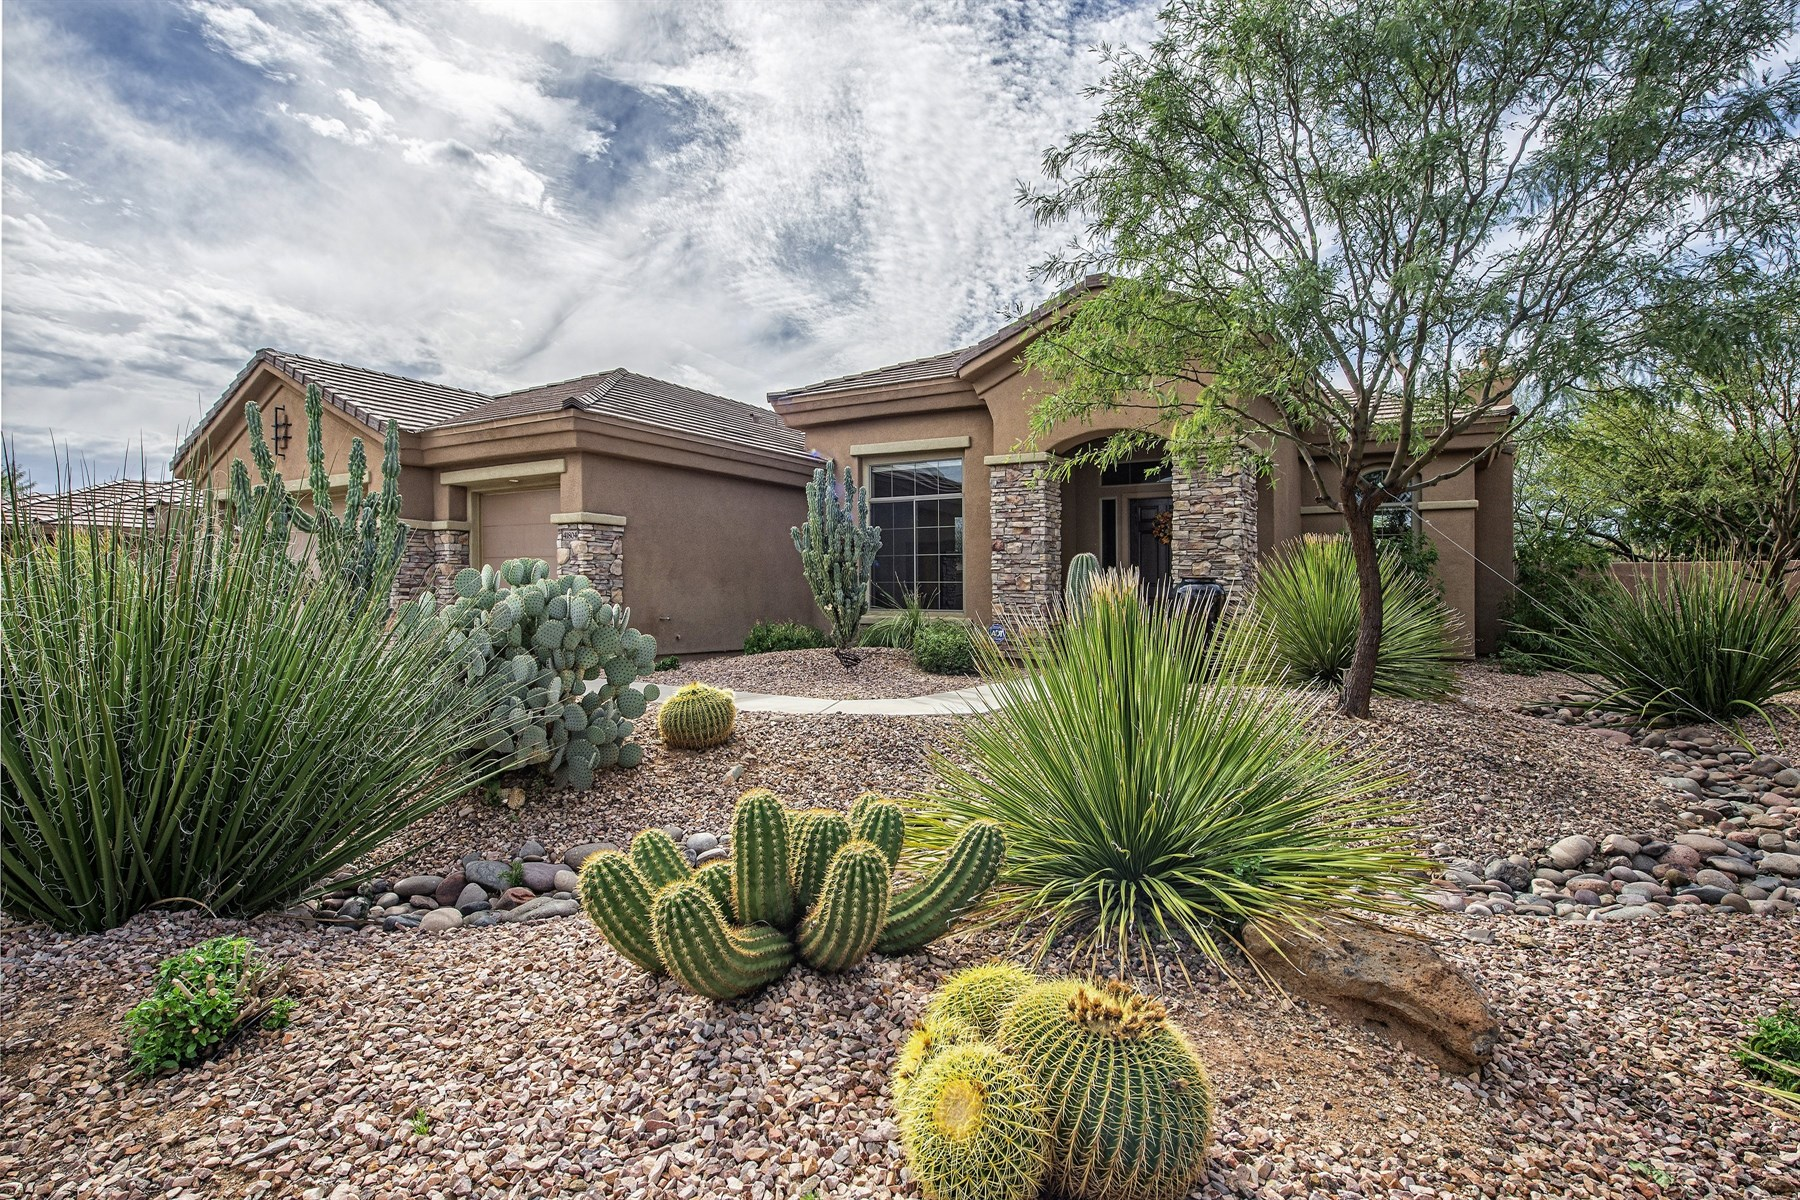 Casa Unifamiliar por un Venta en One of the best lots in the Country Club with incomparable views 41804 N Club Pointe Dr Phoenix, Arizona, 85086 Estados Unidos